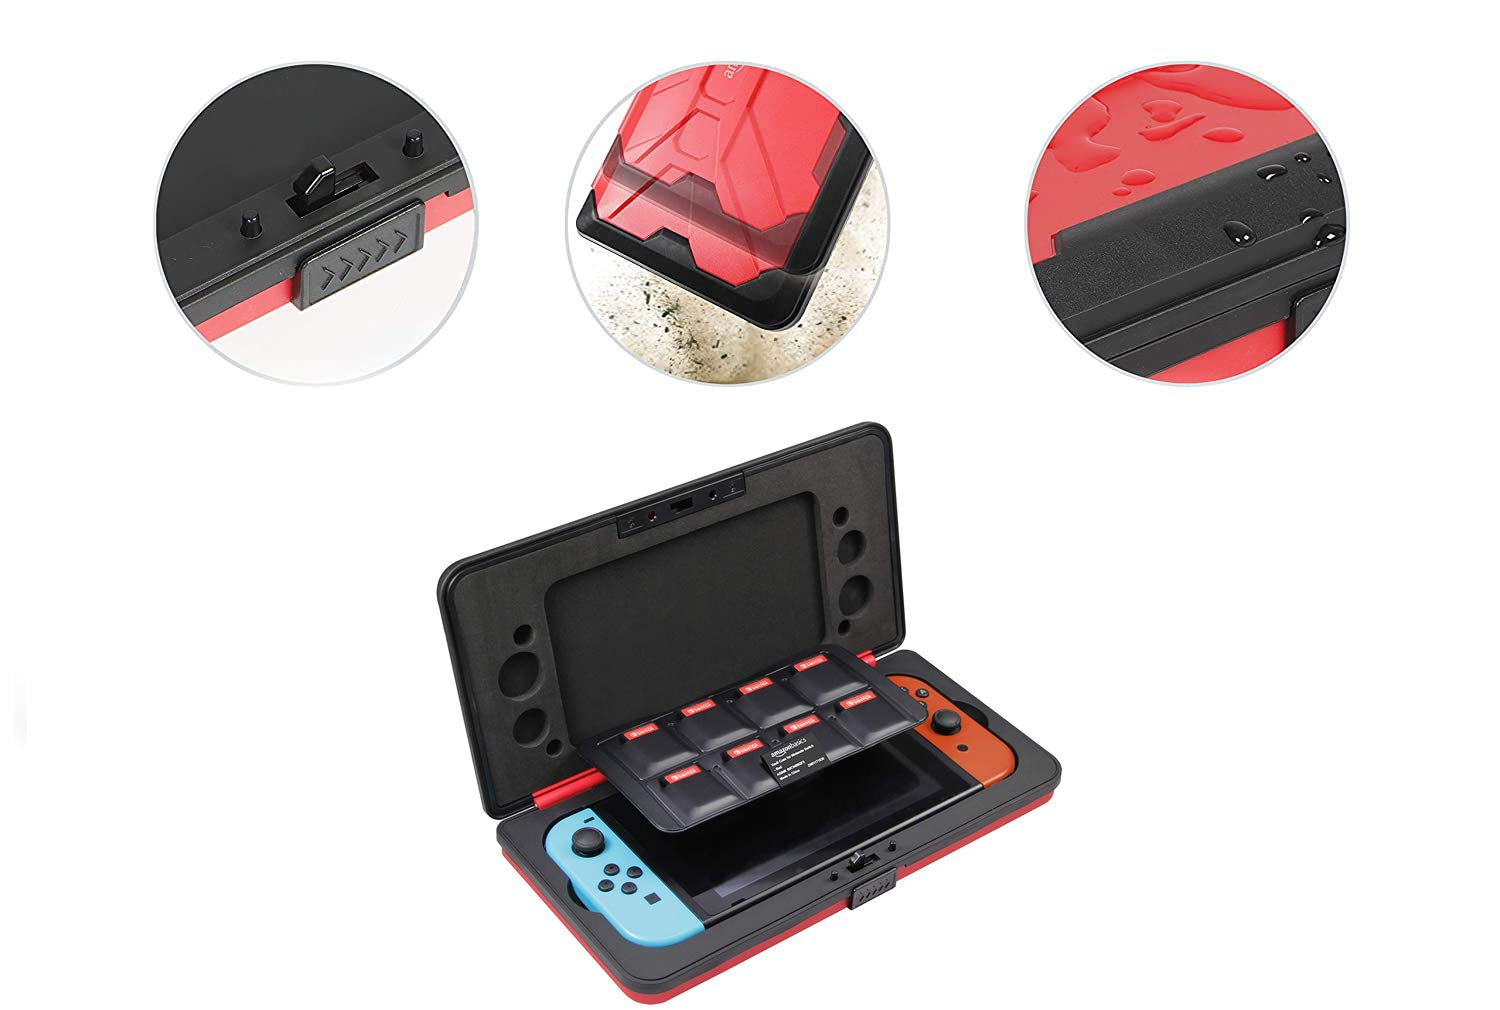 Amazon Basics Vault Case for Nintendo Switch, 10.5 x 5.4 x 1.8 inches, Red